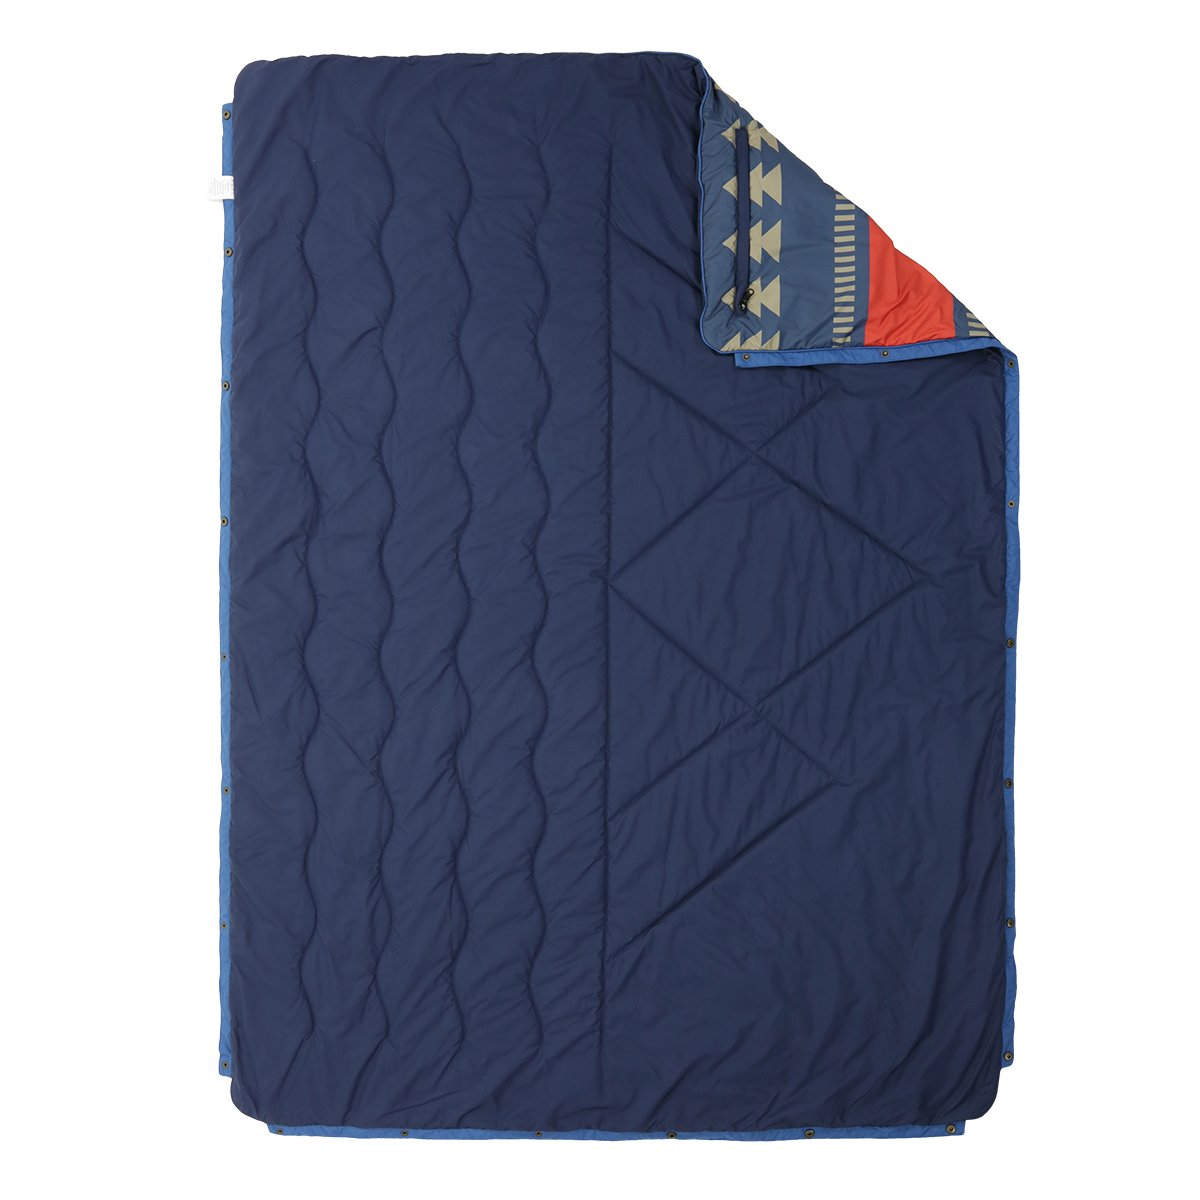 Nomadics 1 Person Insulated Blanket - Navy/Red image 4